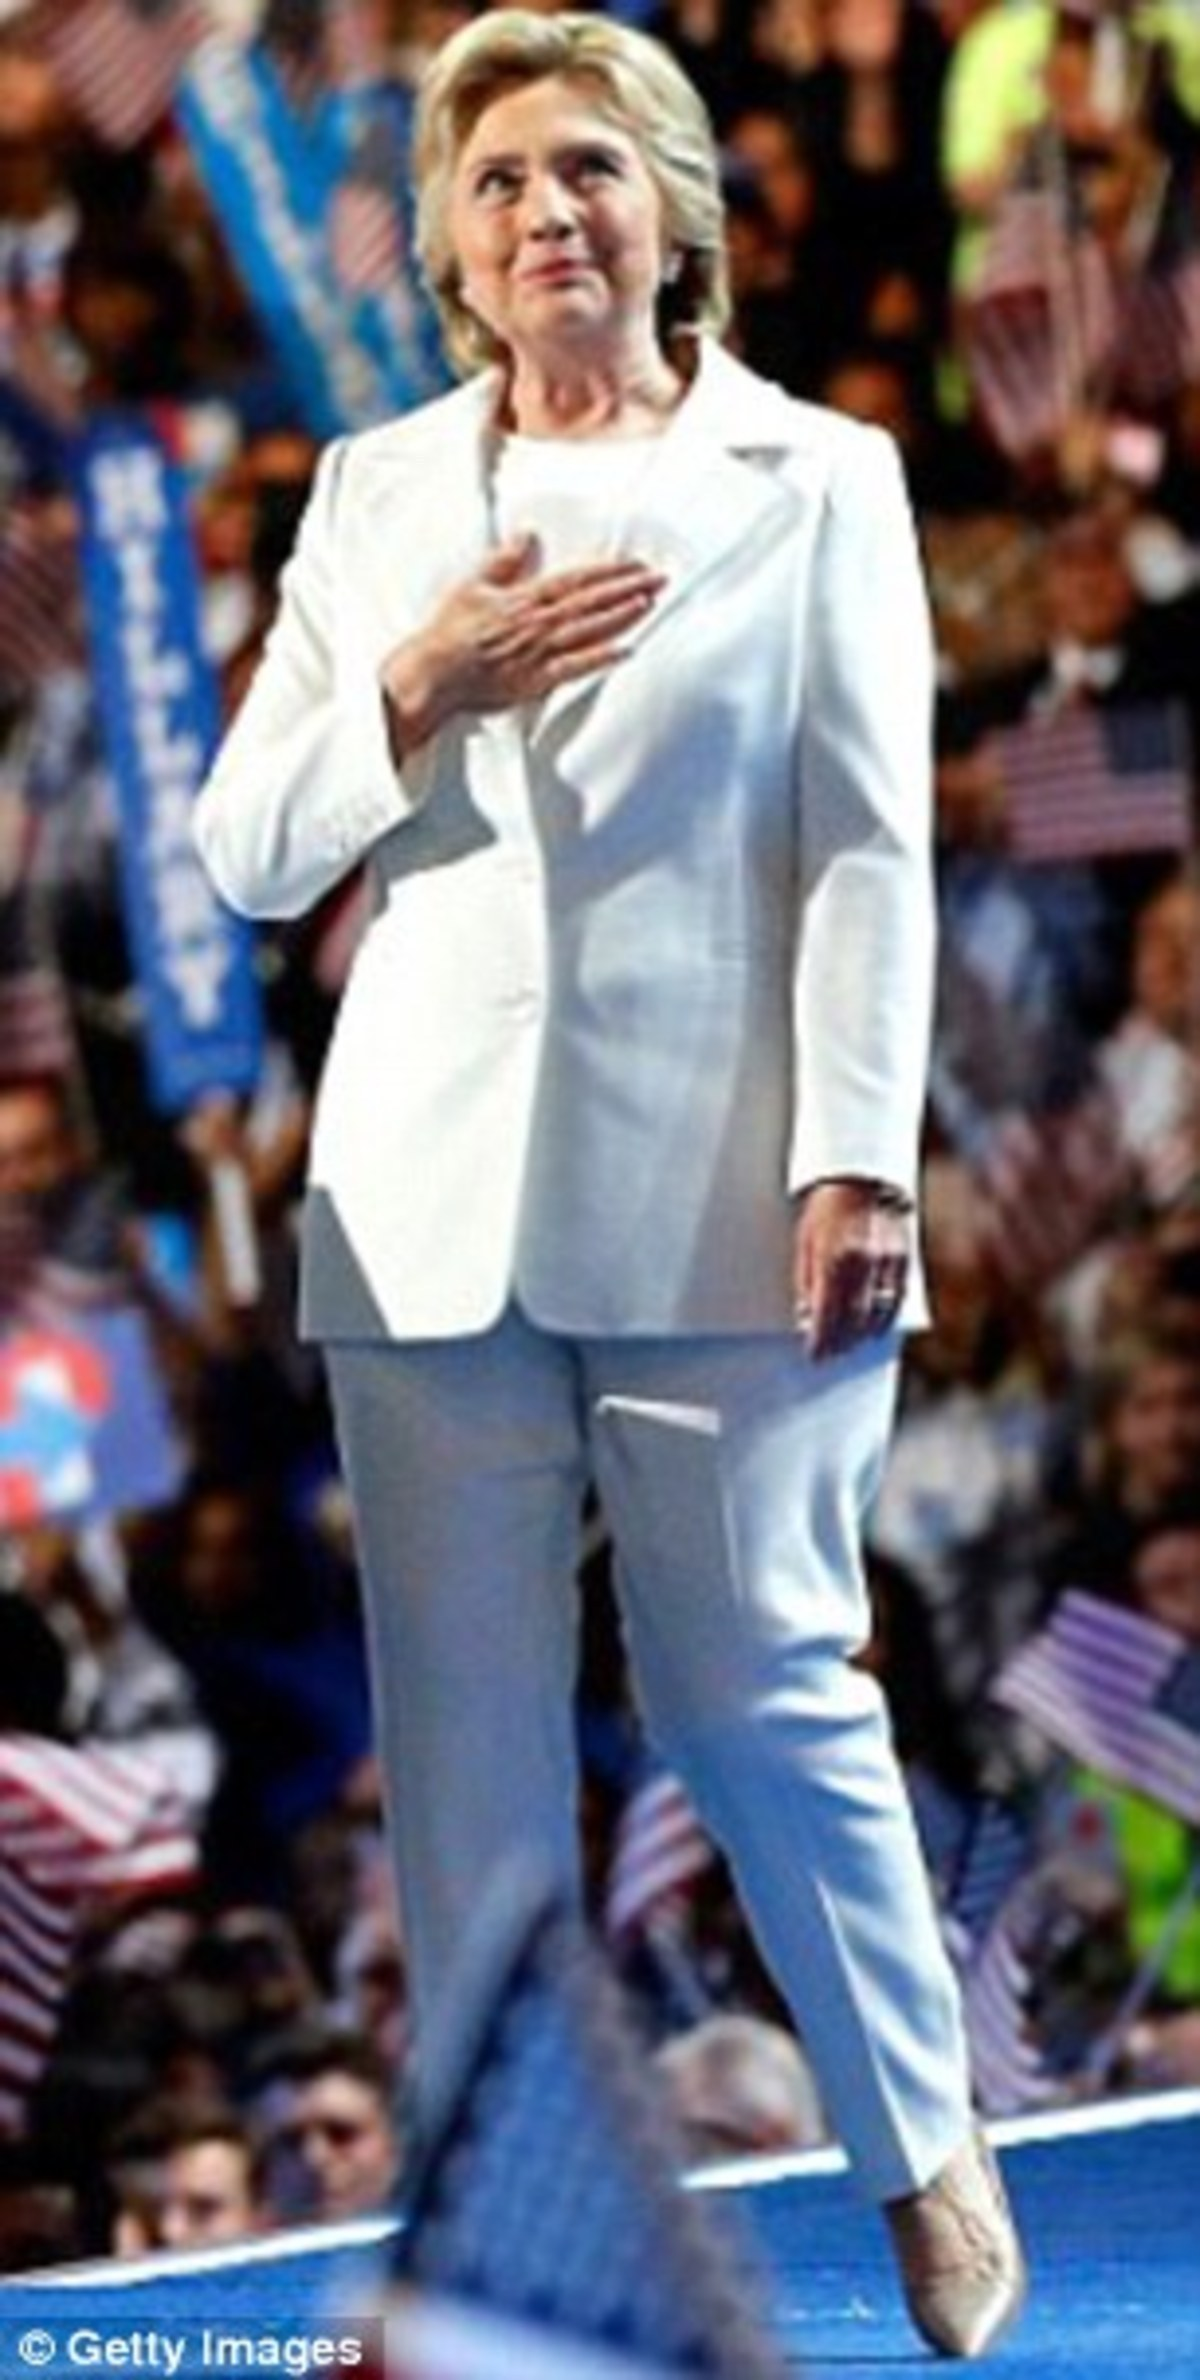 3A3442D100000578-3920328-Hillary_Clinton_wore_white_Ralph_Lauren_pantsuits_to_both_the_De-a-3_1478703960257